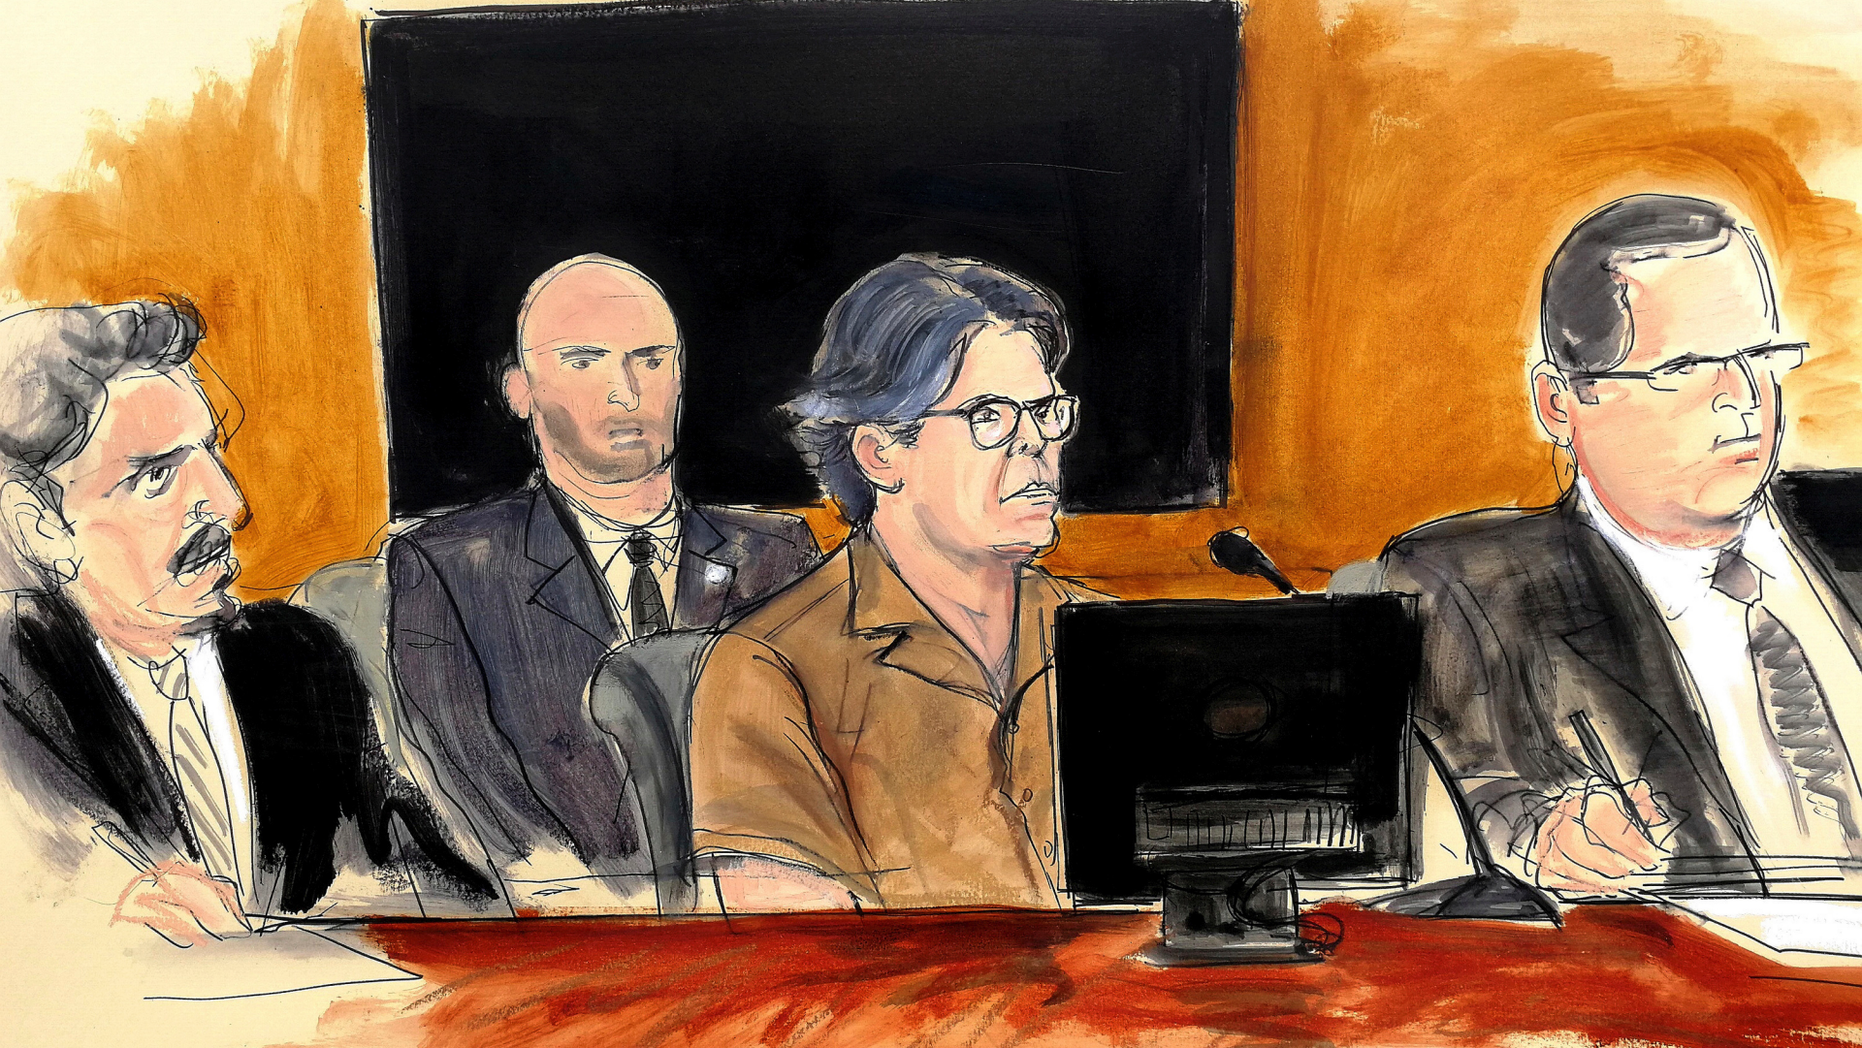 FILE- In this April 13, 2018 courtroom sketch Keith Raniere, second from right, leader of the secretive group NXIVM, attends a court hearing in the Brooklyn borough of New York. The spiritual leader of an upstate New York self-help group has pleaded not guilty on Monday, March 18, 2019 to new charges accusing him of possessing child pornography. (Elizabeth Williams via AP, File)